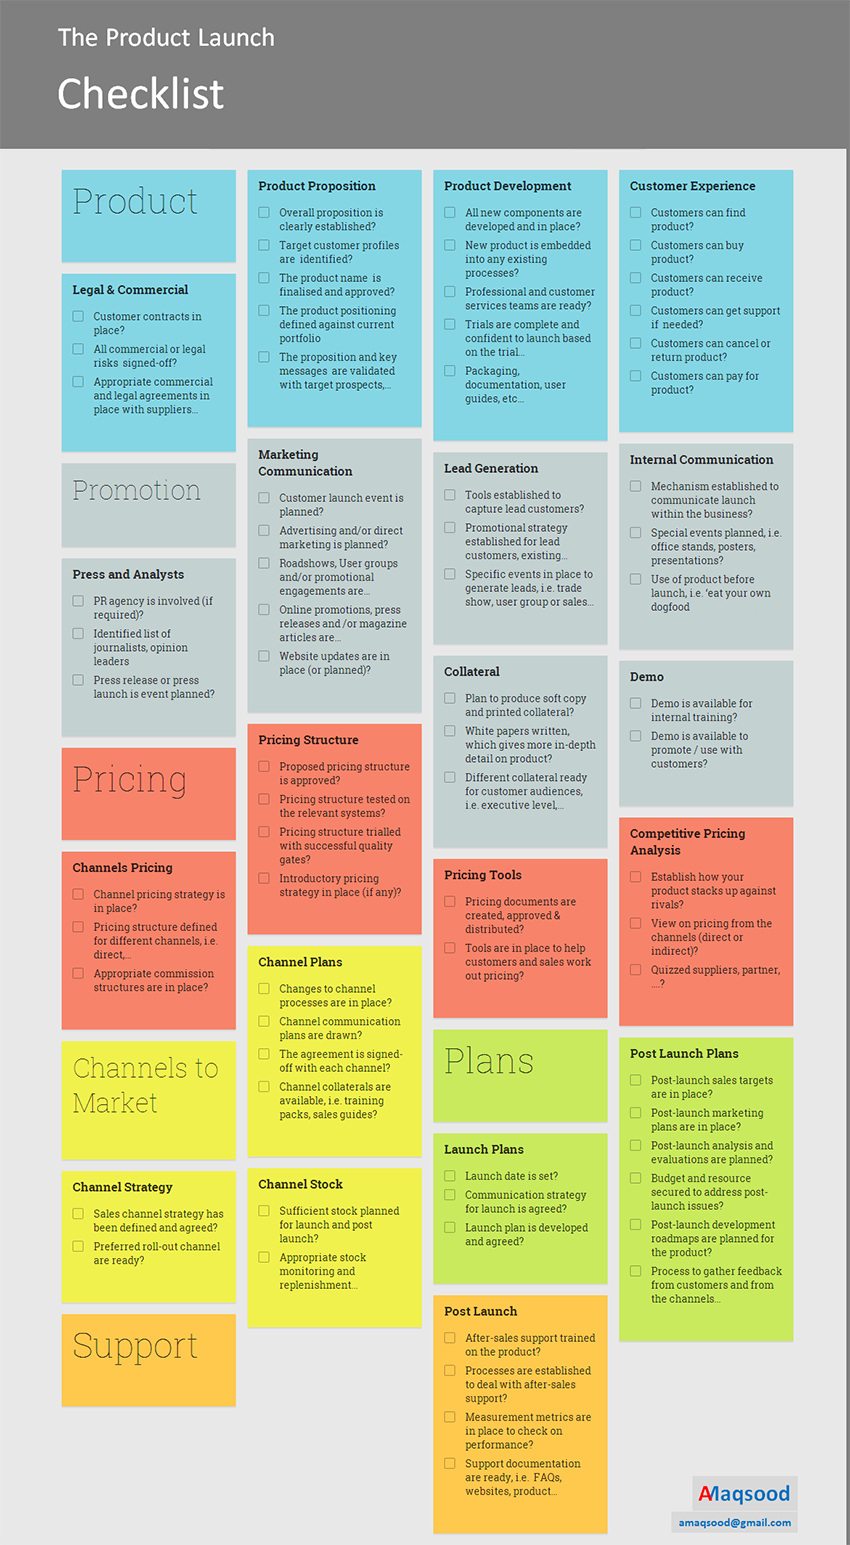 Launching a Product Soon? Check out: The Ultimate Product Launch Checklist Template!